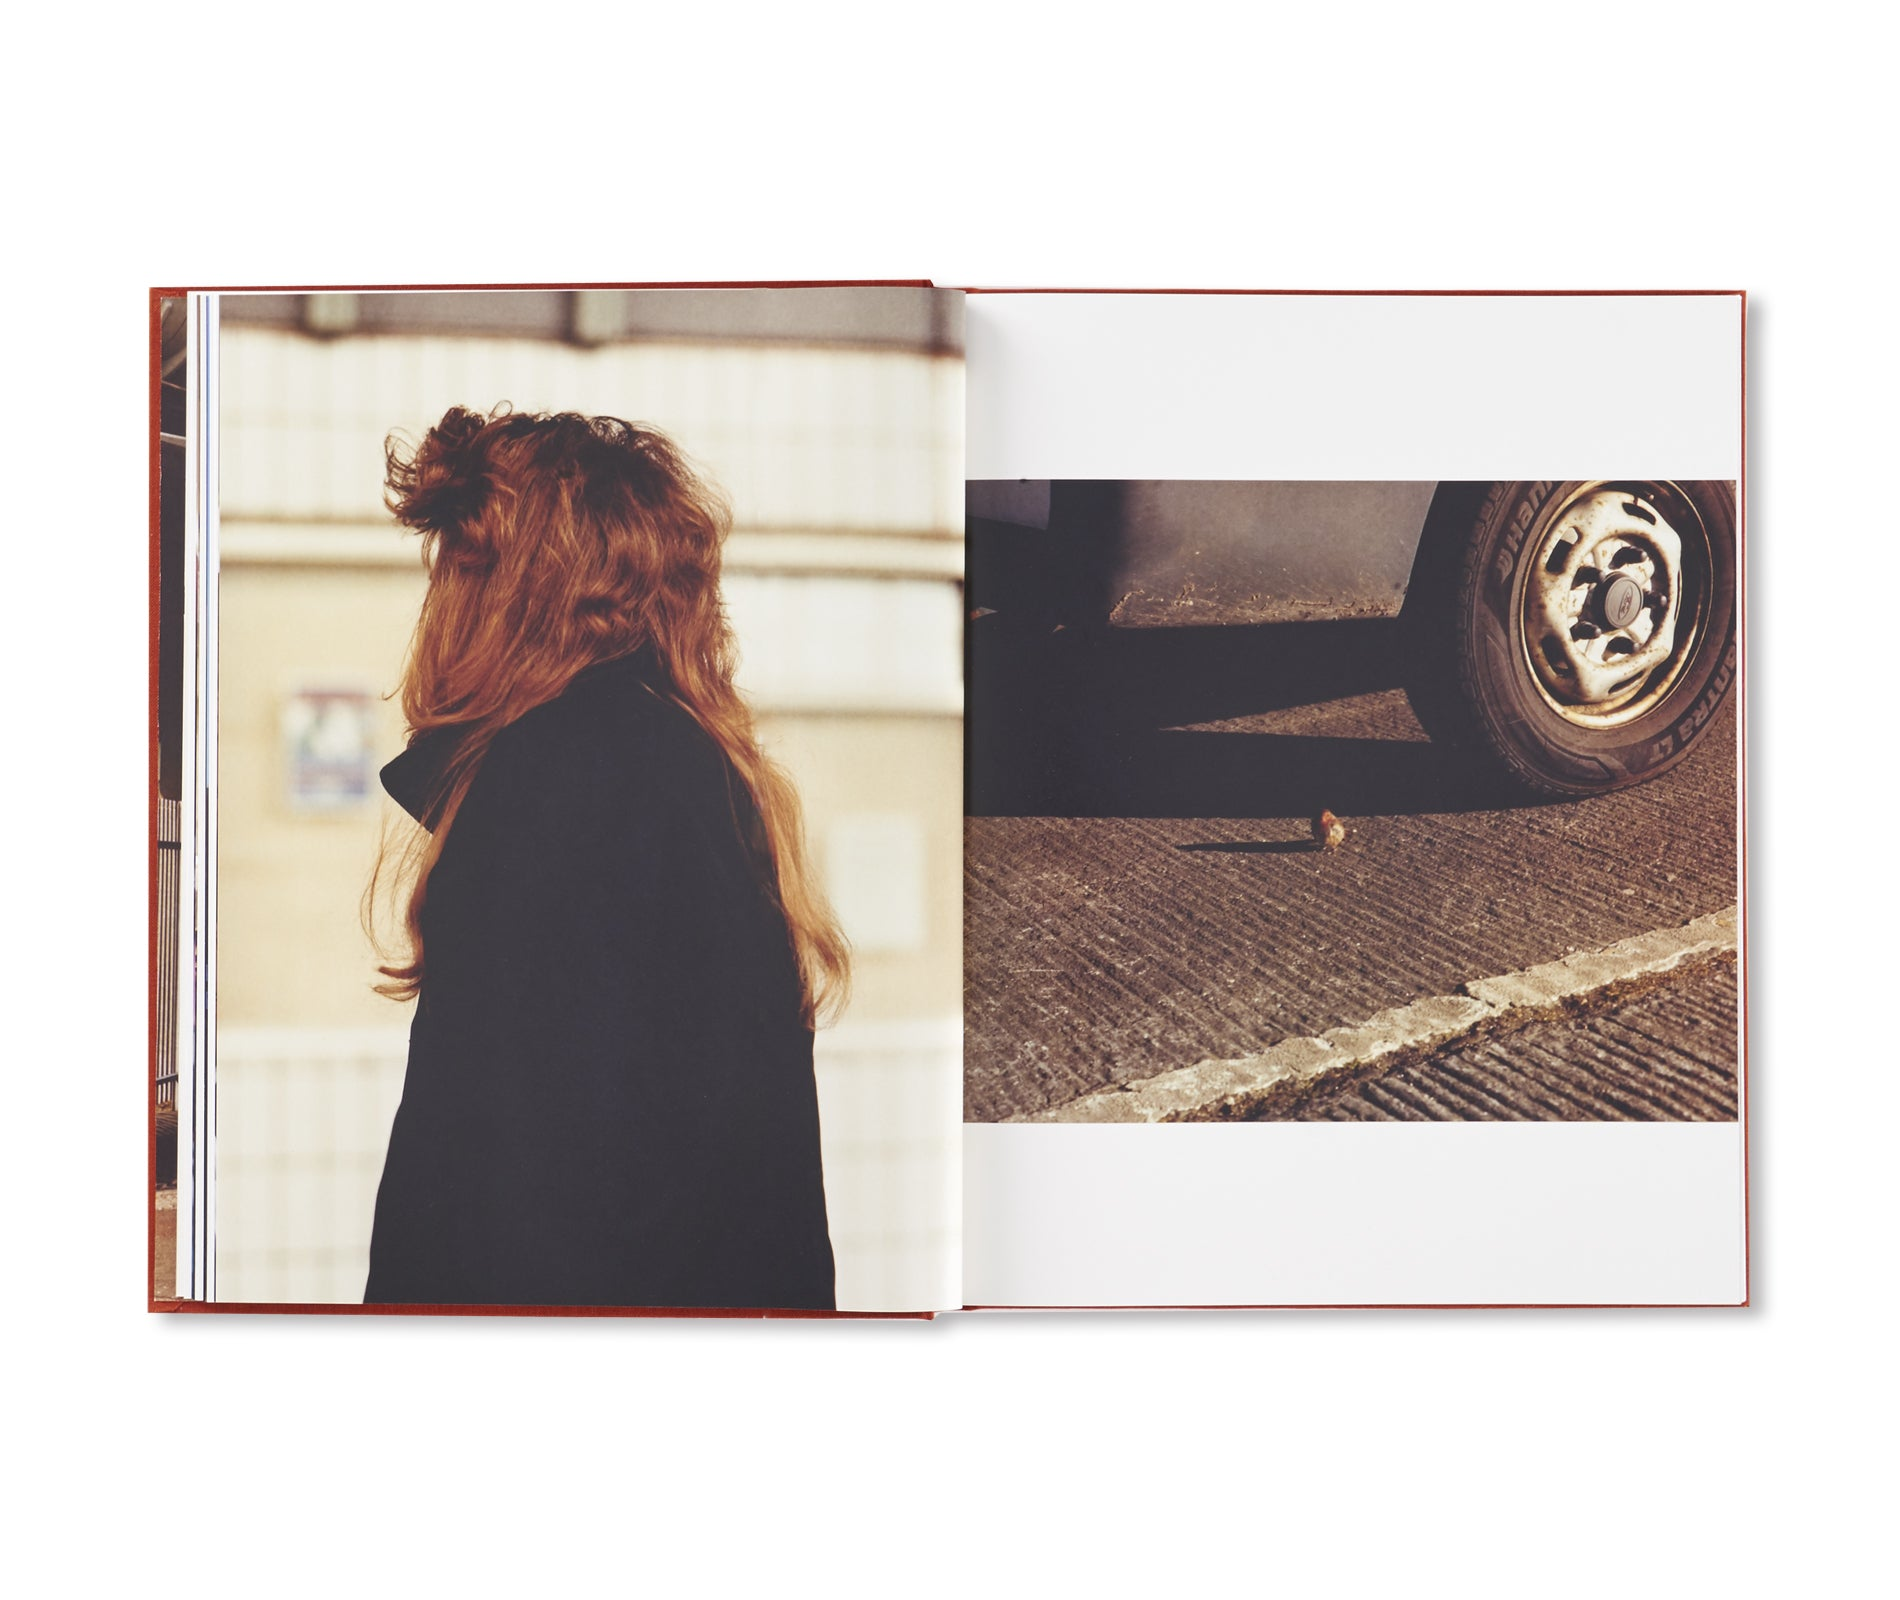 PRESTON BUS STATION by Jamie Hawkesworth